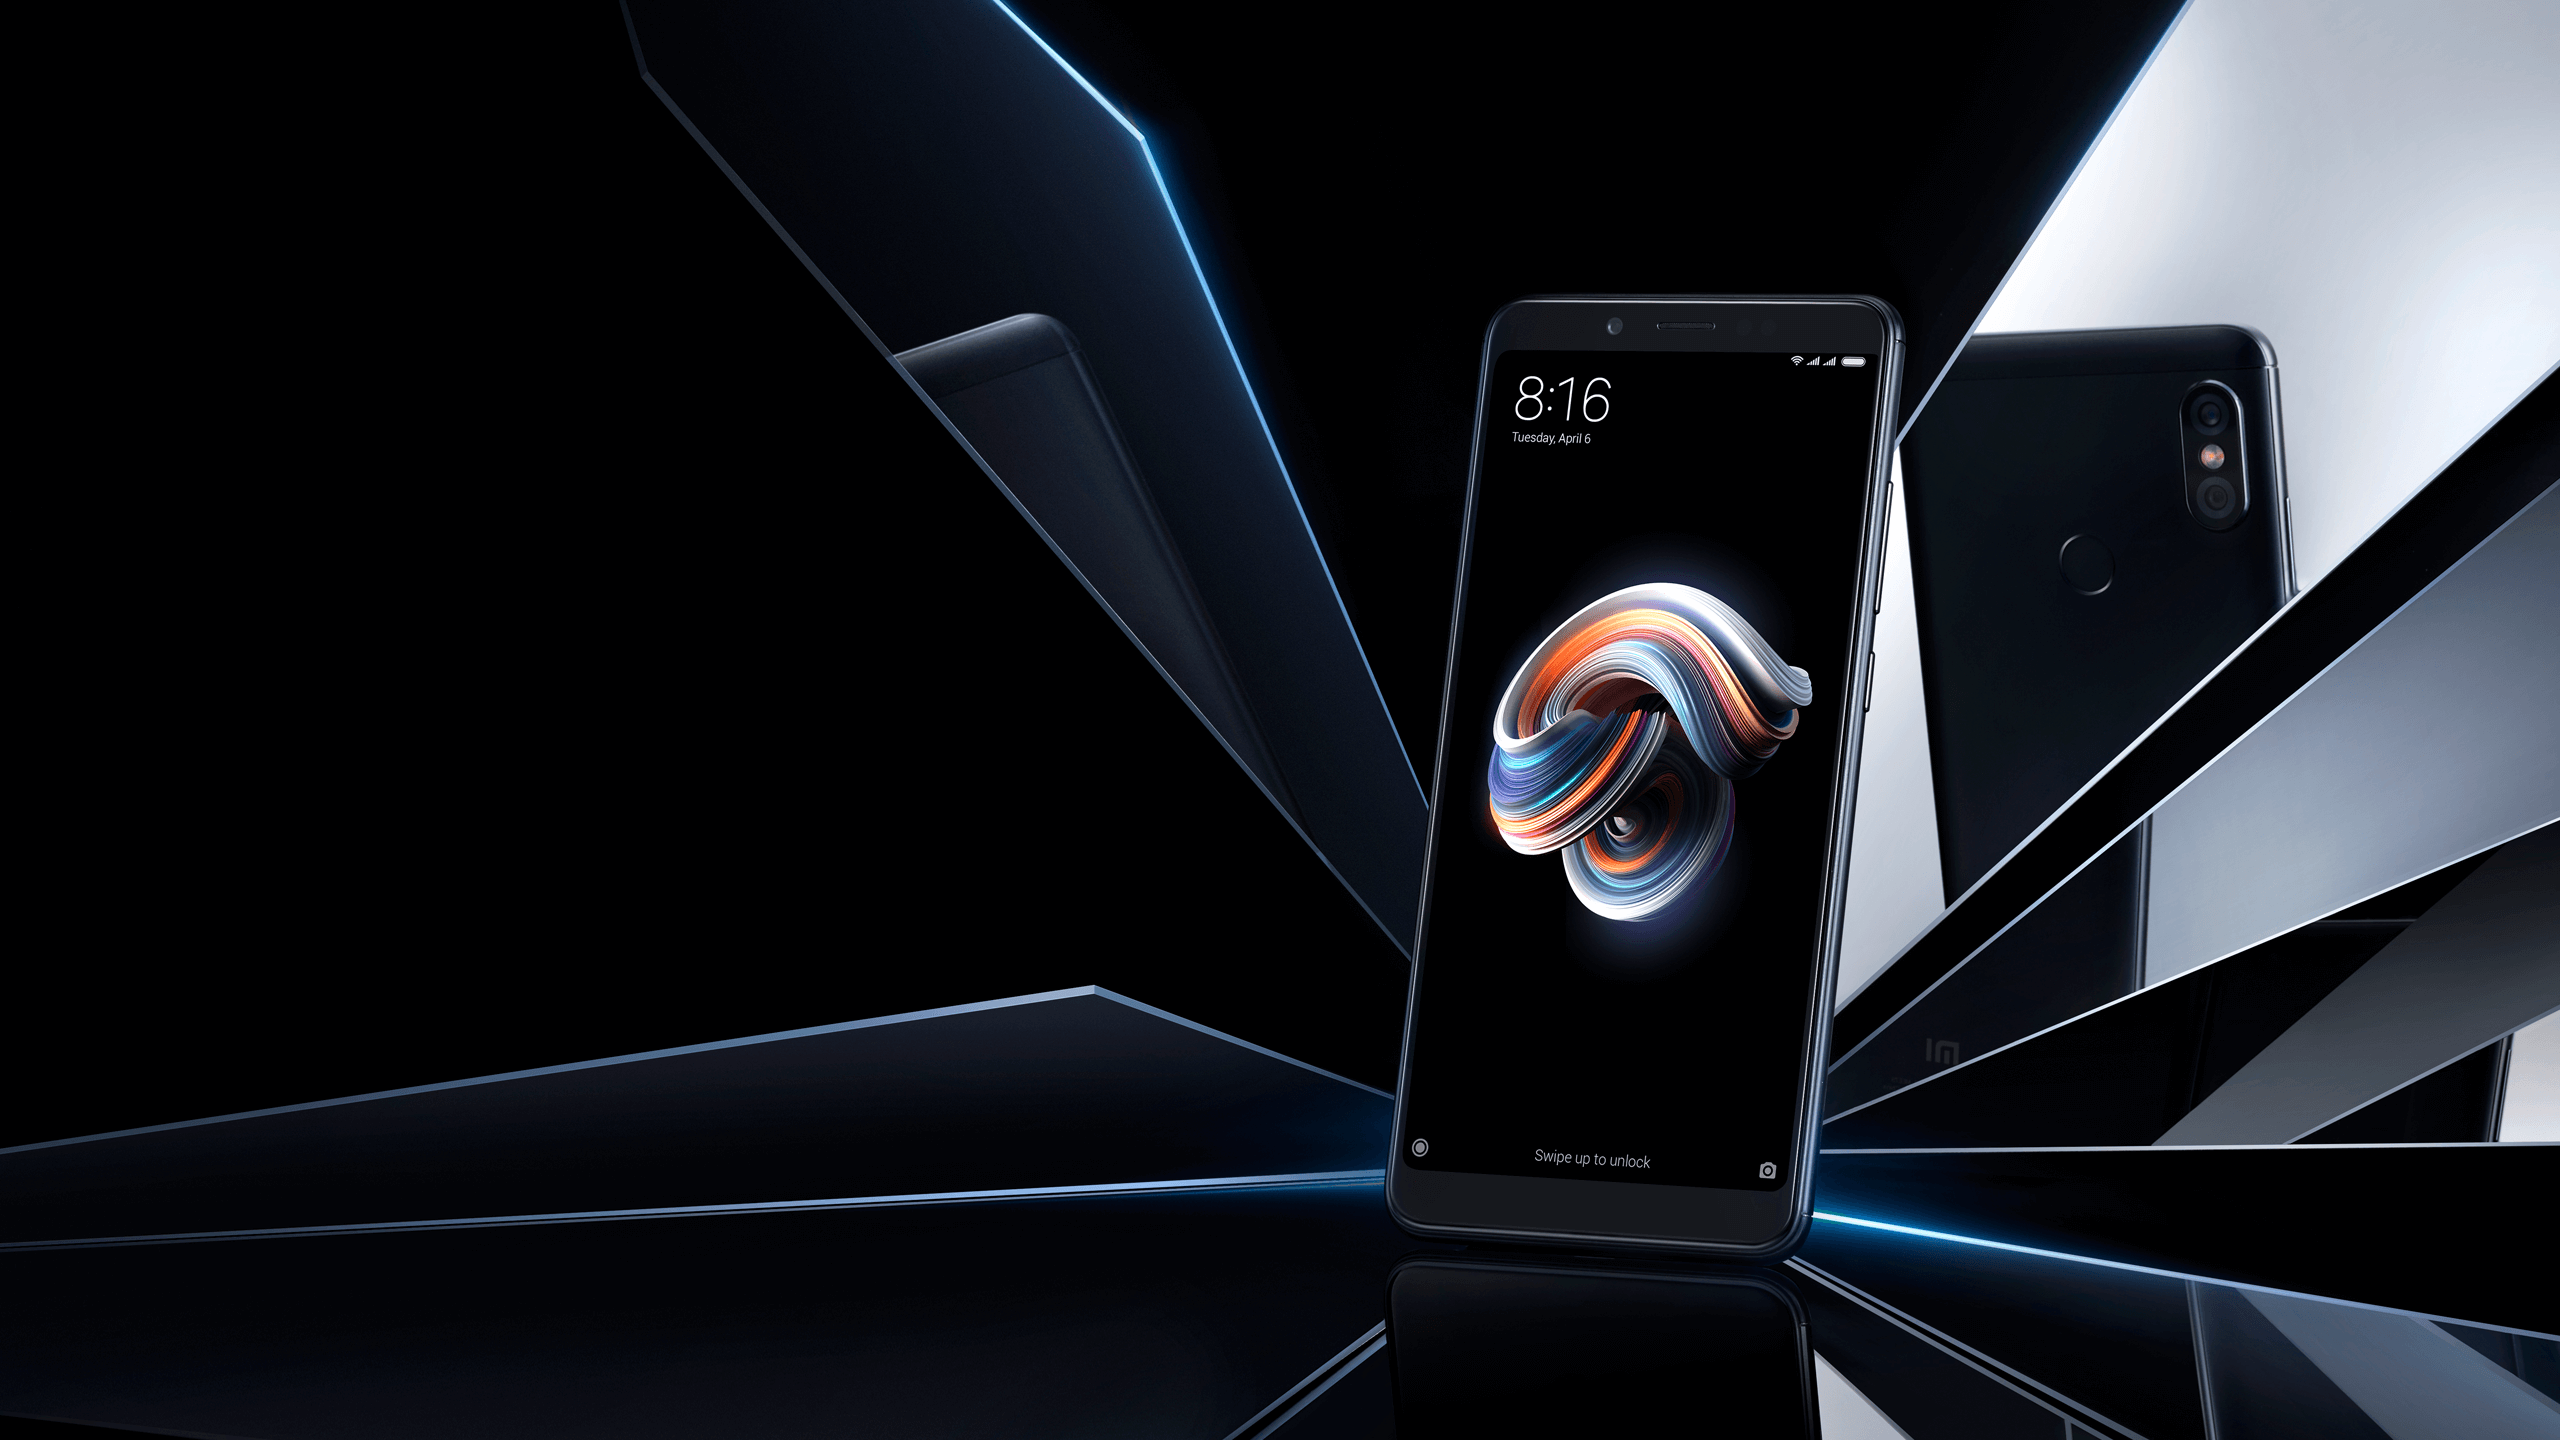 How to Install Lineage OS 15.1 on Xiaomi Redmi Note 5 Pro, Install Android 8.0.1 Oreo on Xiaomi Redmi Note 5 Pro, Install Lineage OS 15.1 on Xiaomi Redmi Note 5 Pro